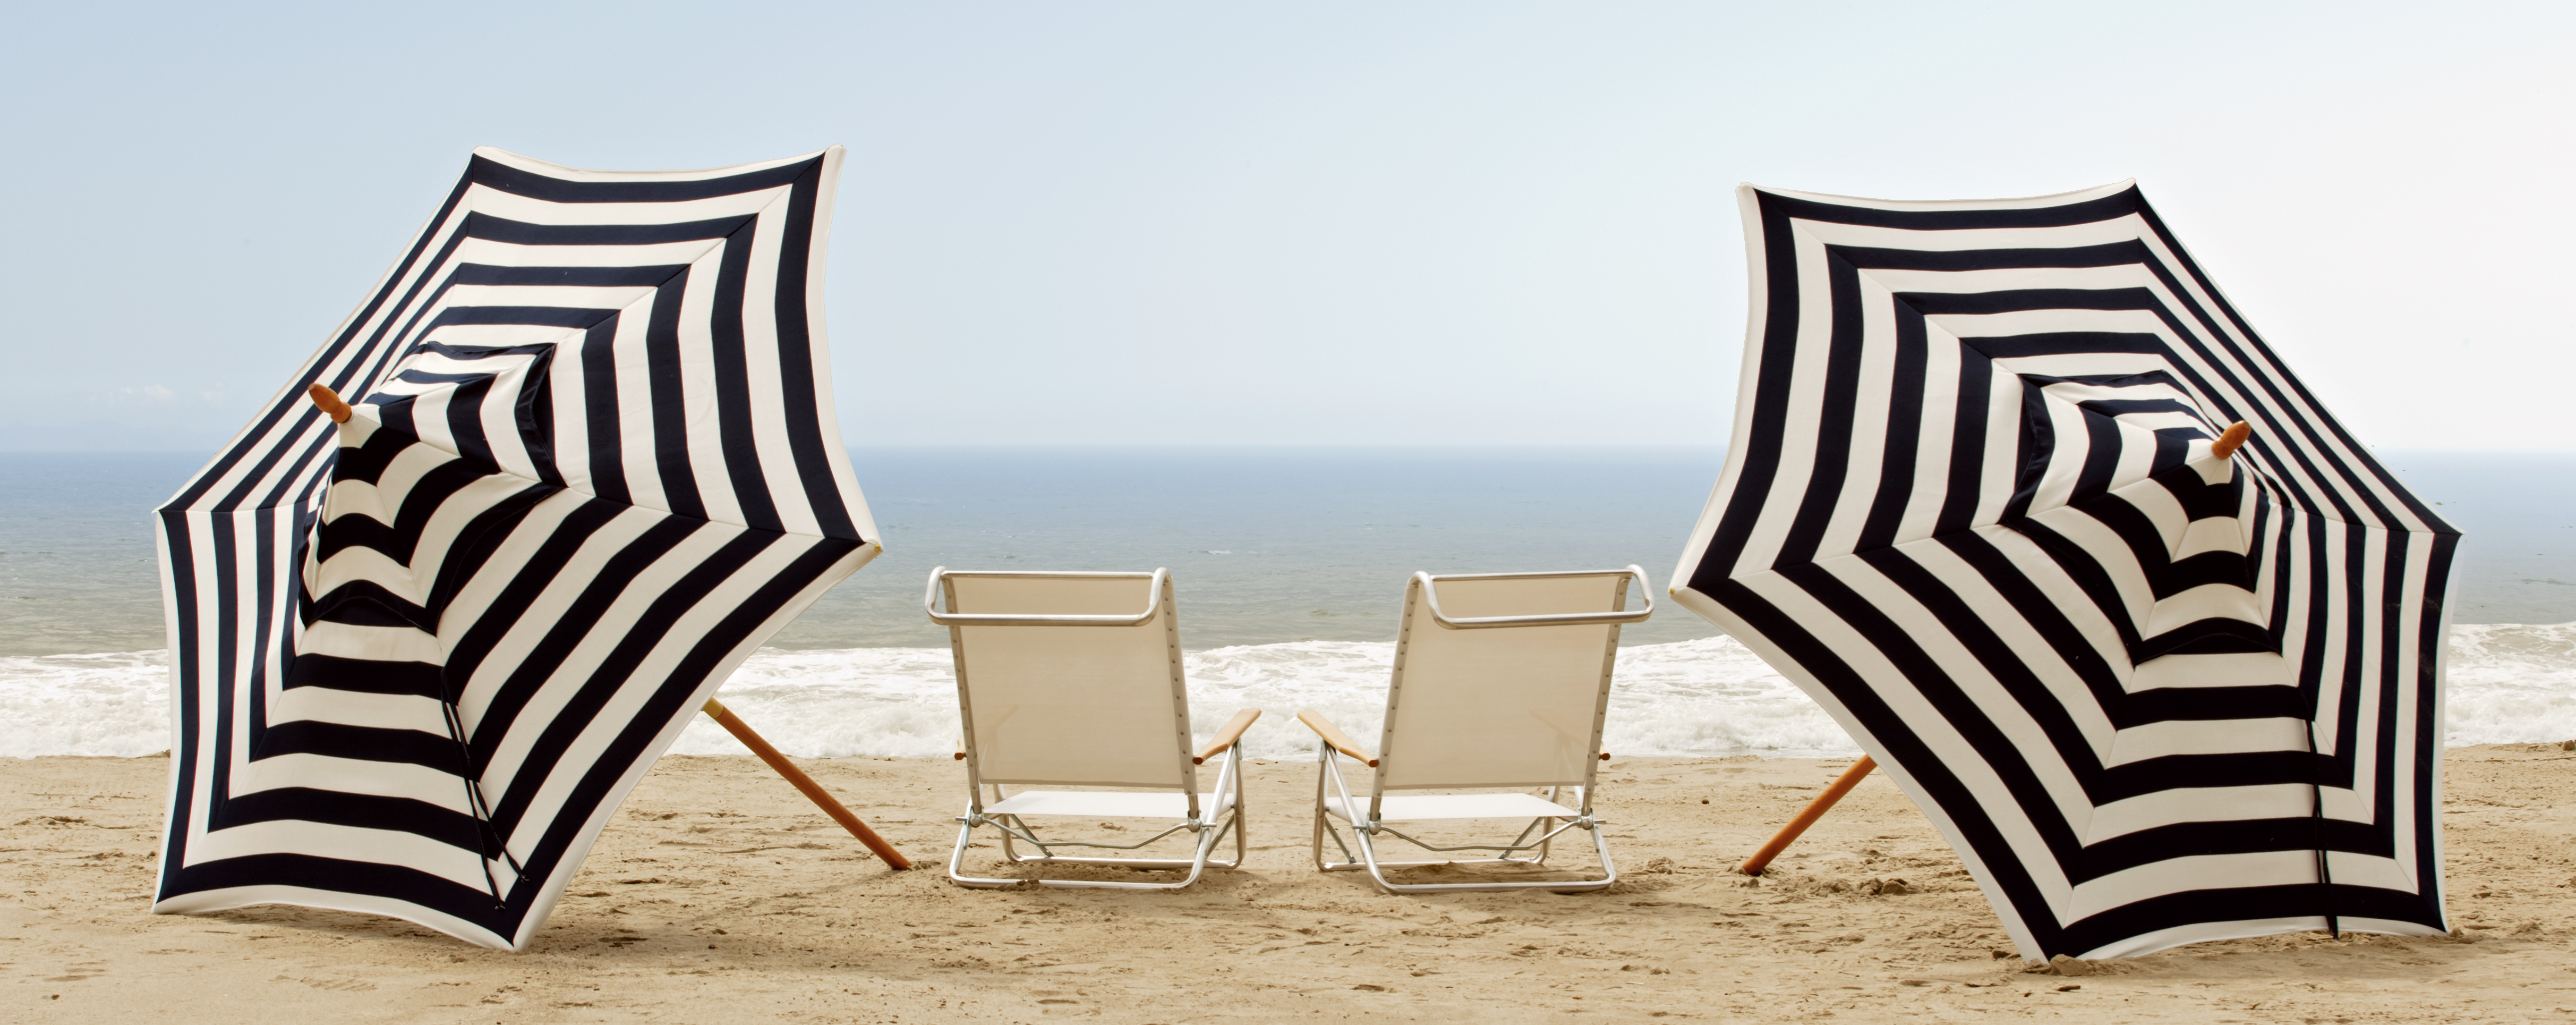 Telescope Beach Chair Telescope Casual Beach Chairs Commercial Beach Chairs Wholesale